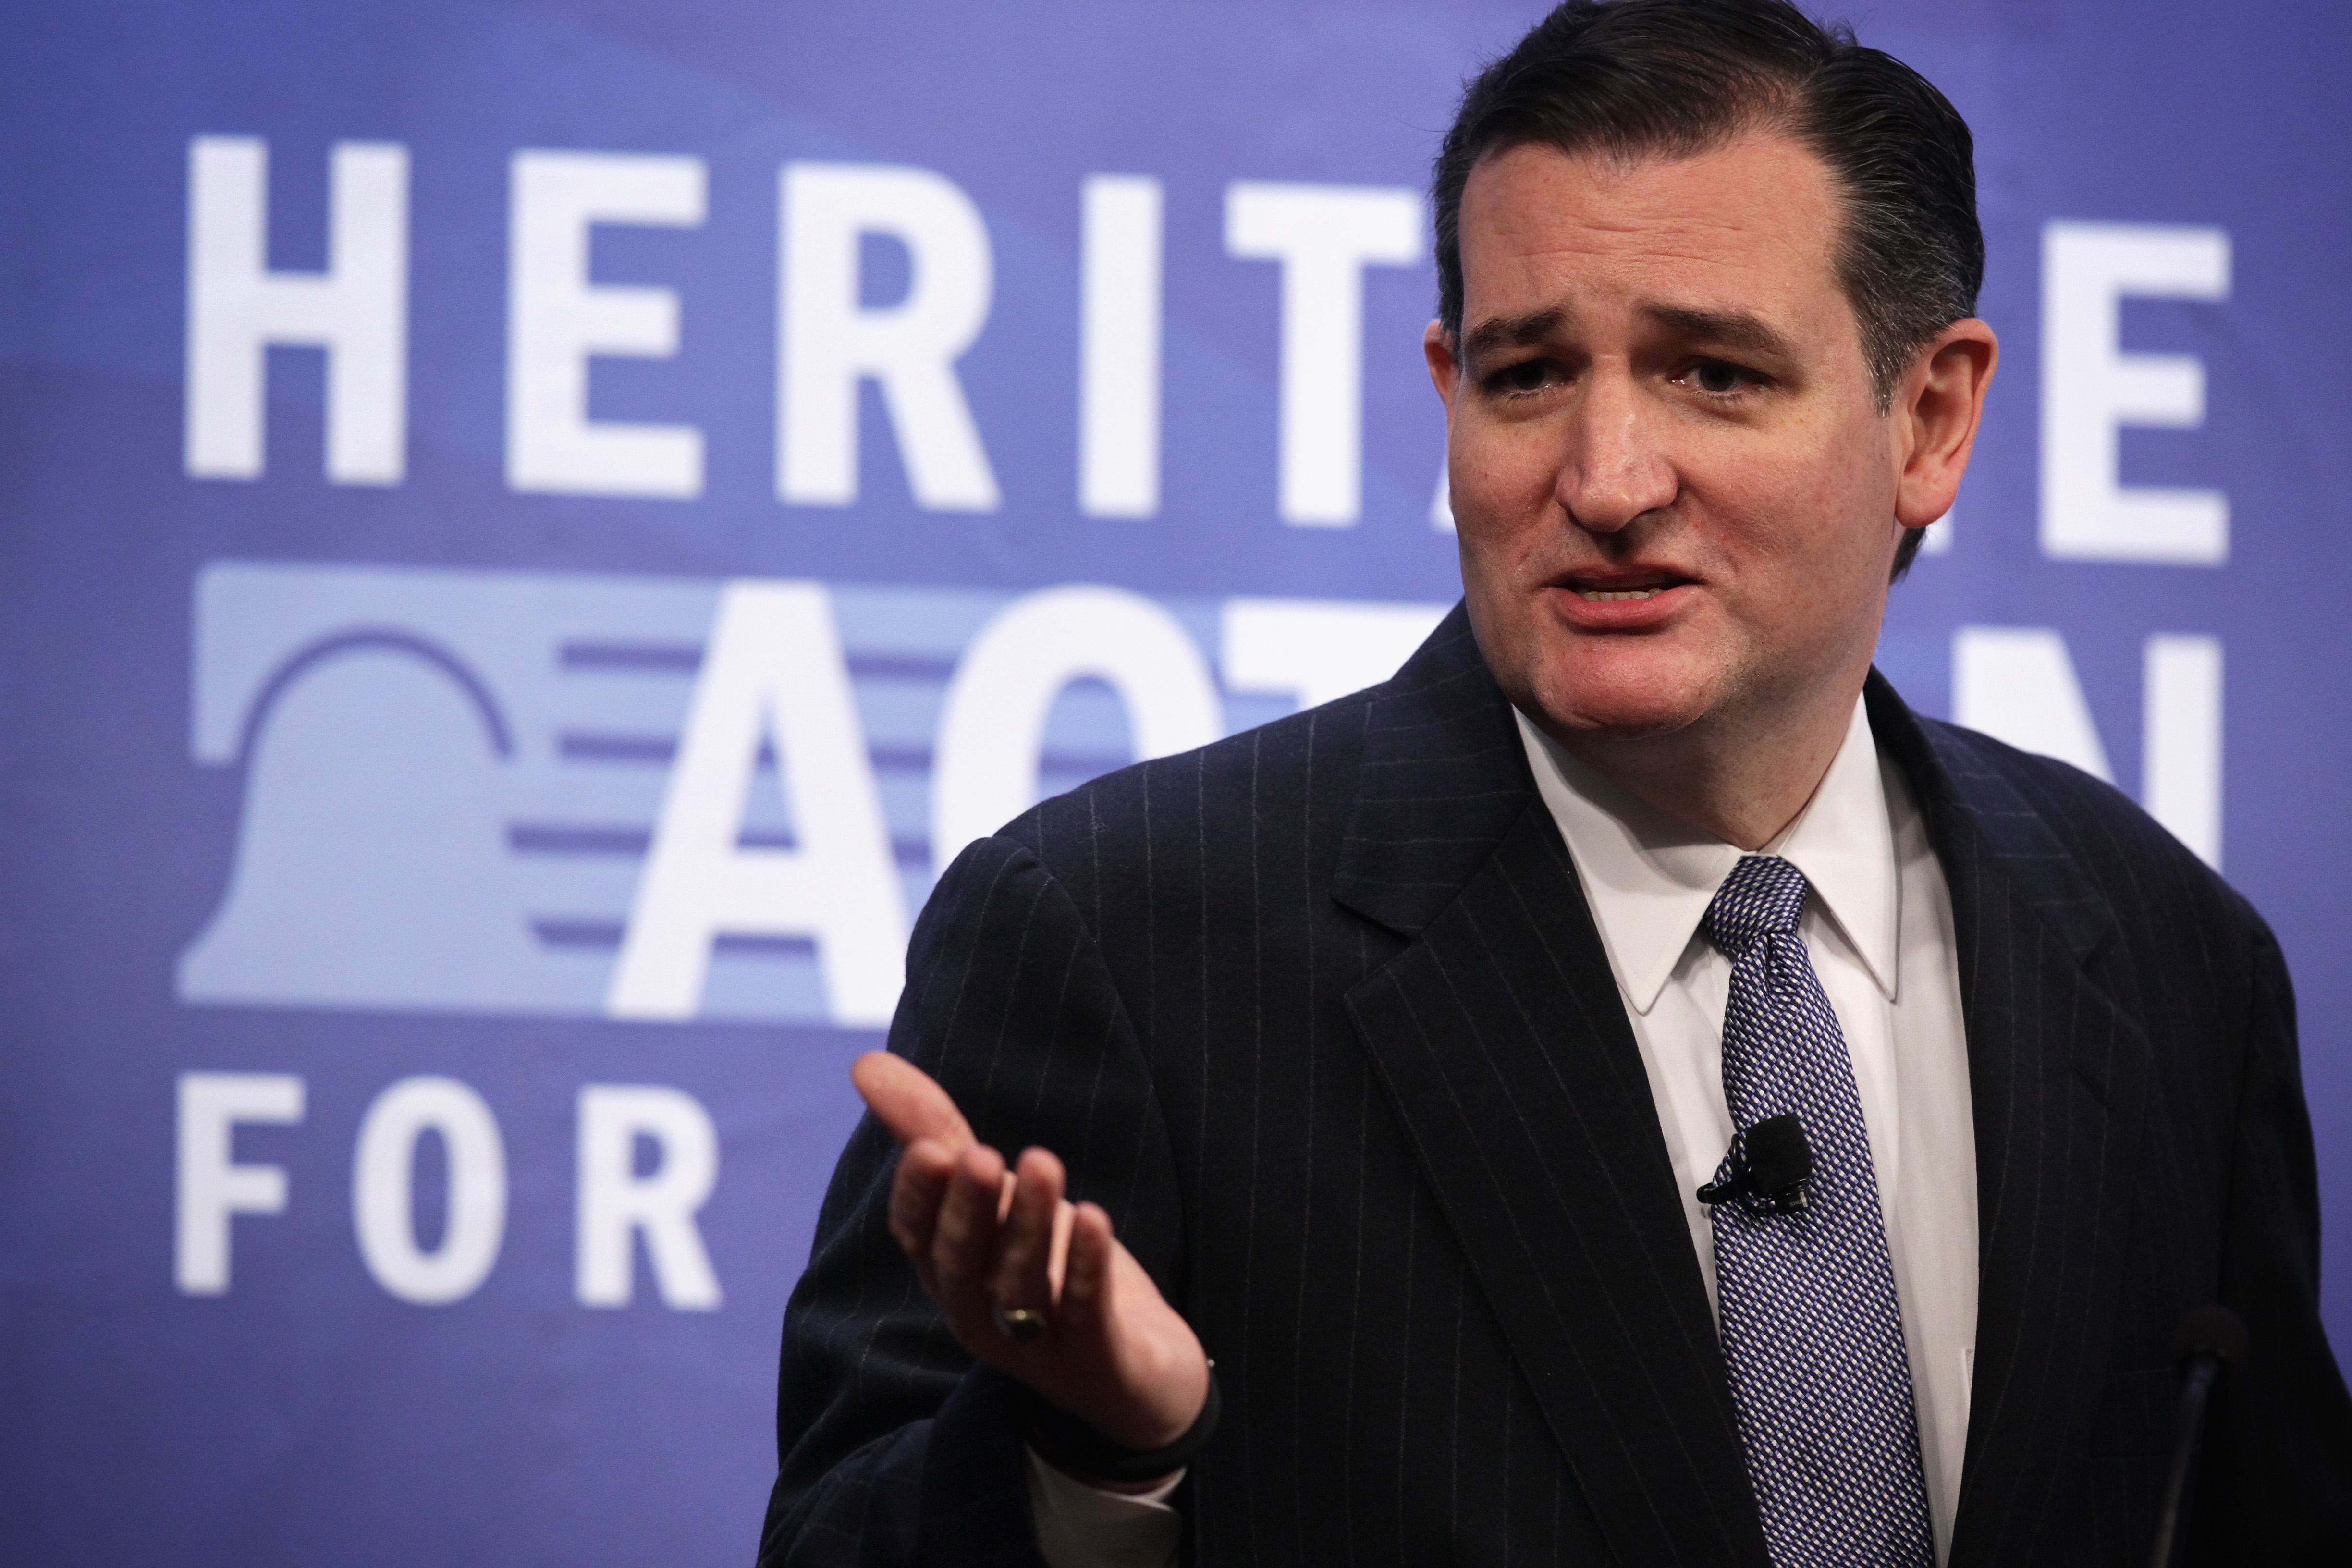 """Sen. Ted Cruz will discuss """"nuclear Iran"""" with Elie Wiesel on Monday. (Photo: Alex Wong)"""